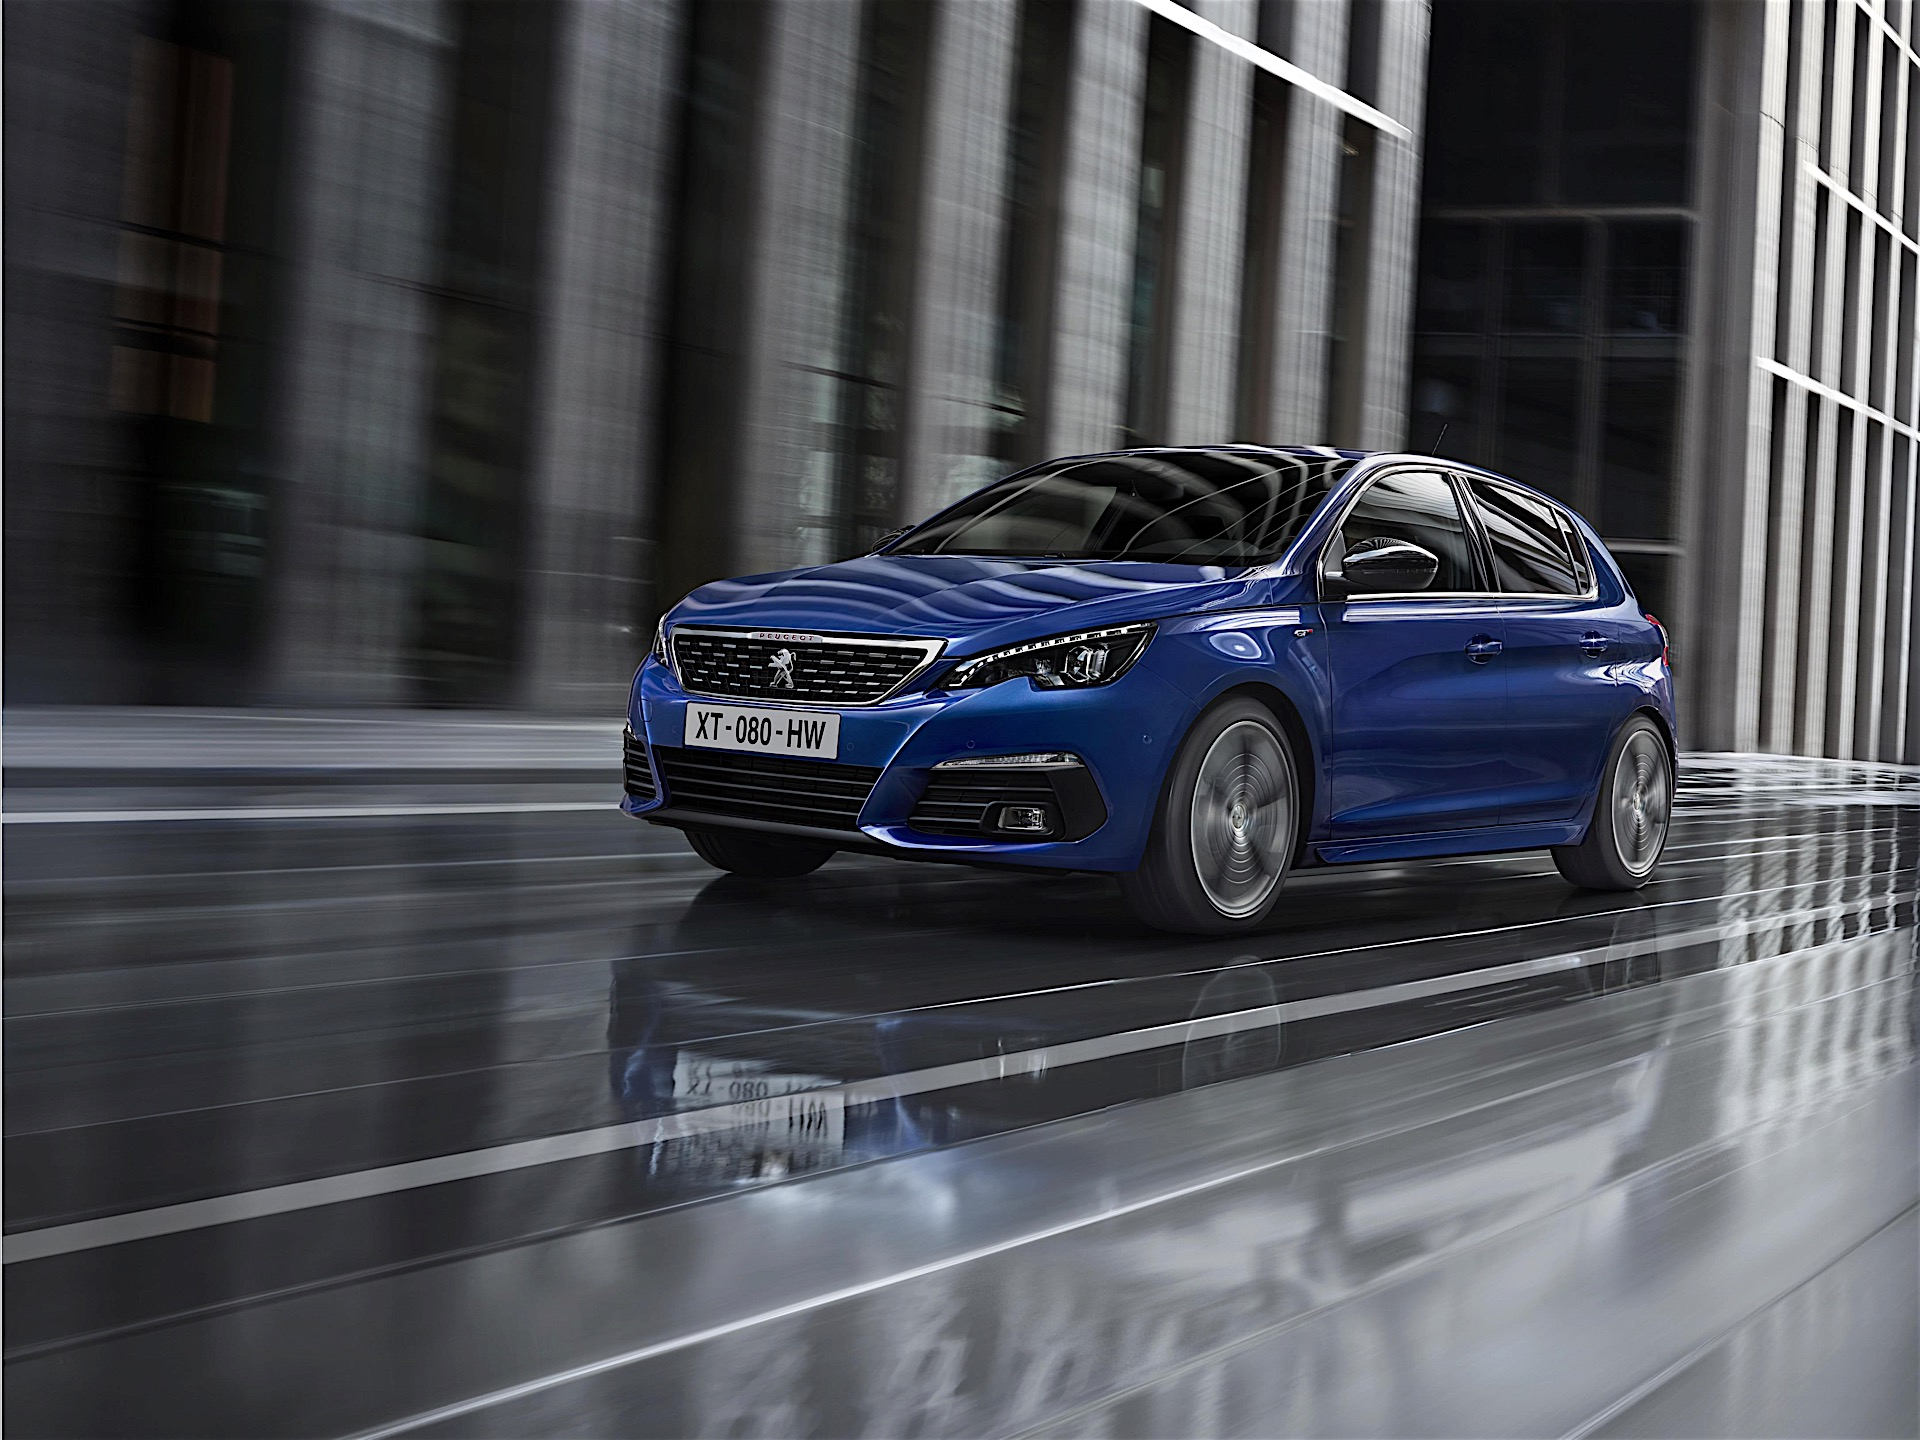 2018 peugeot 308 facelift officially unveiled new engines. Black Bedroom Furniture Sets. Home Design Ideas